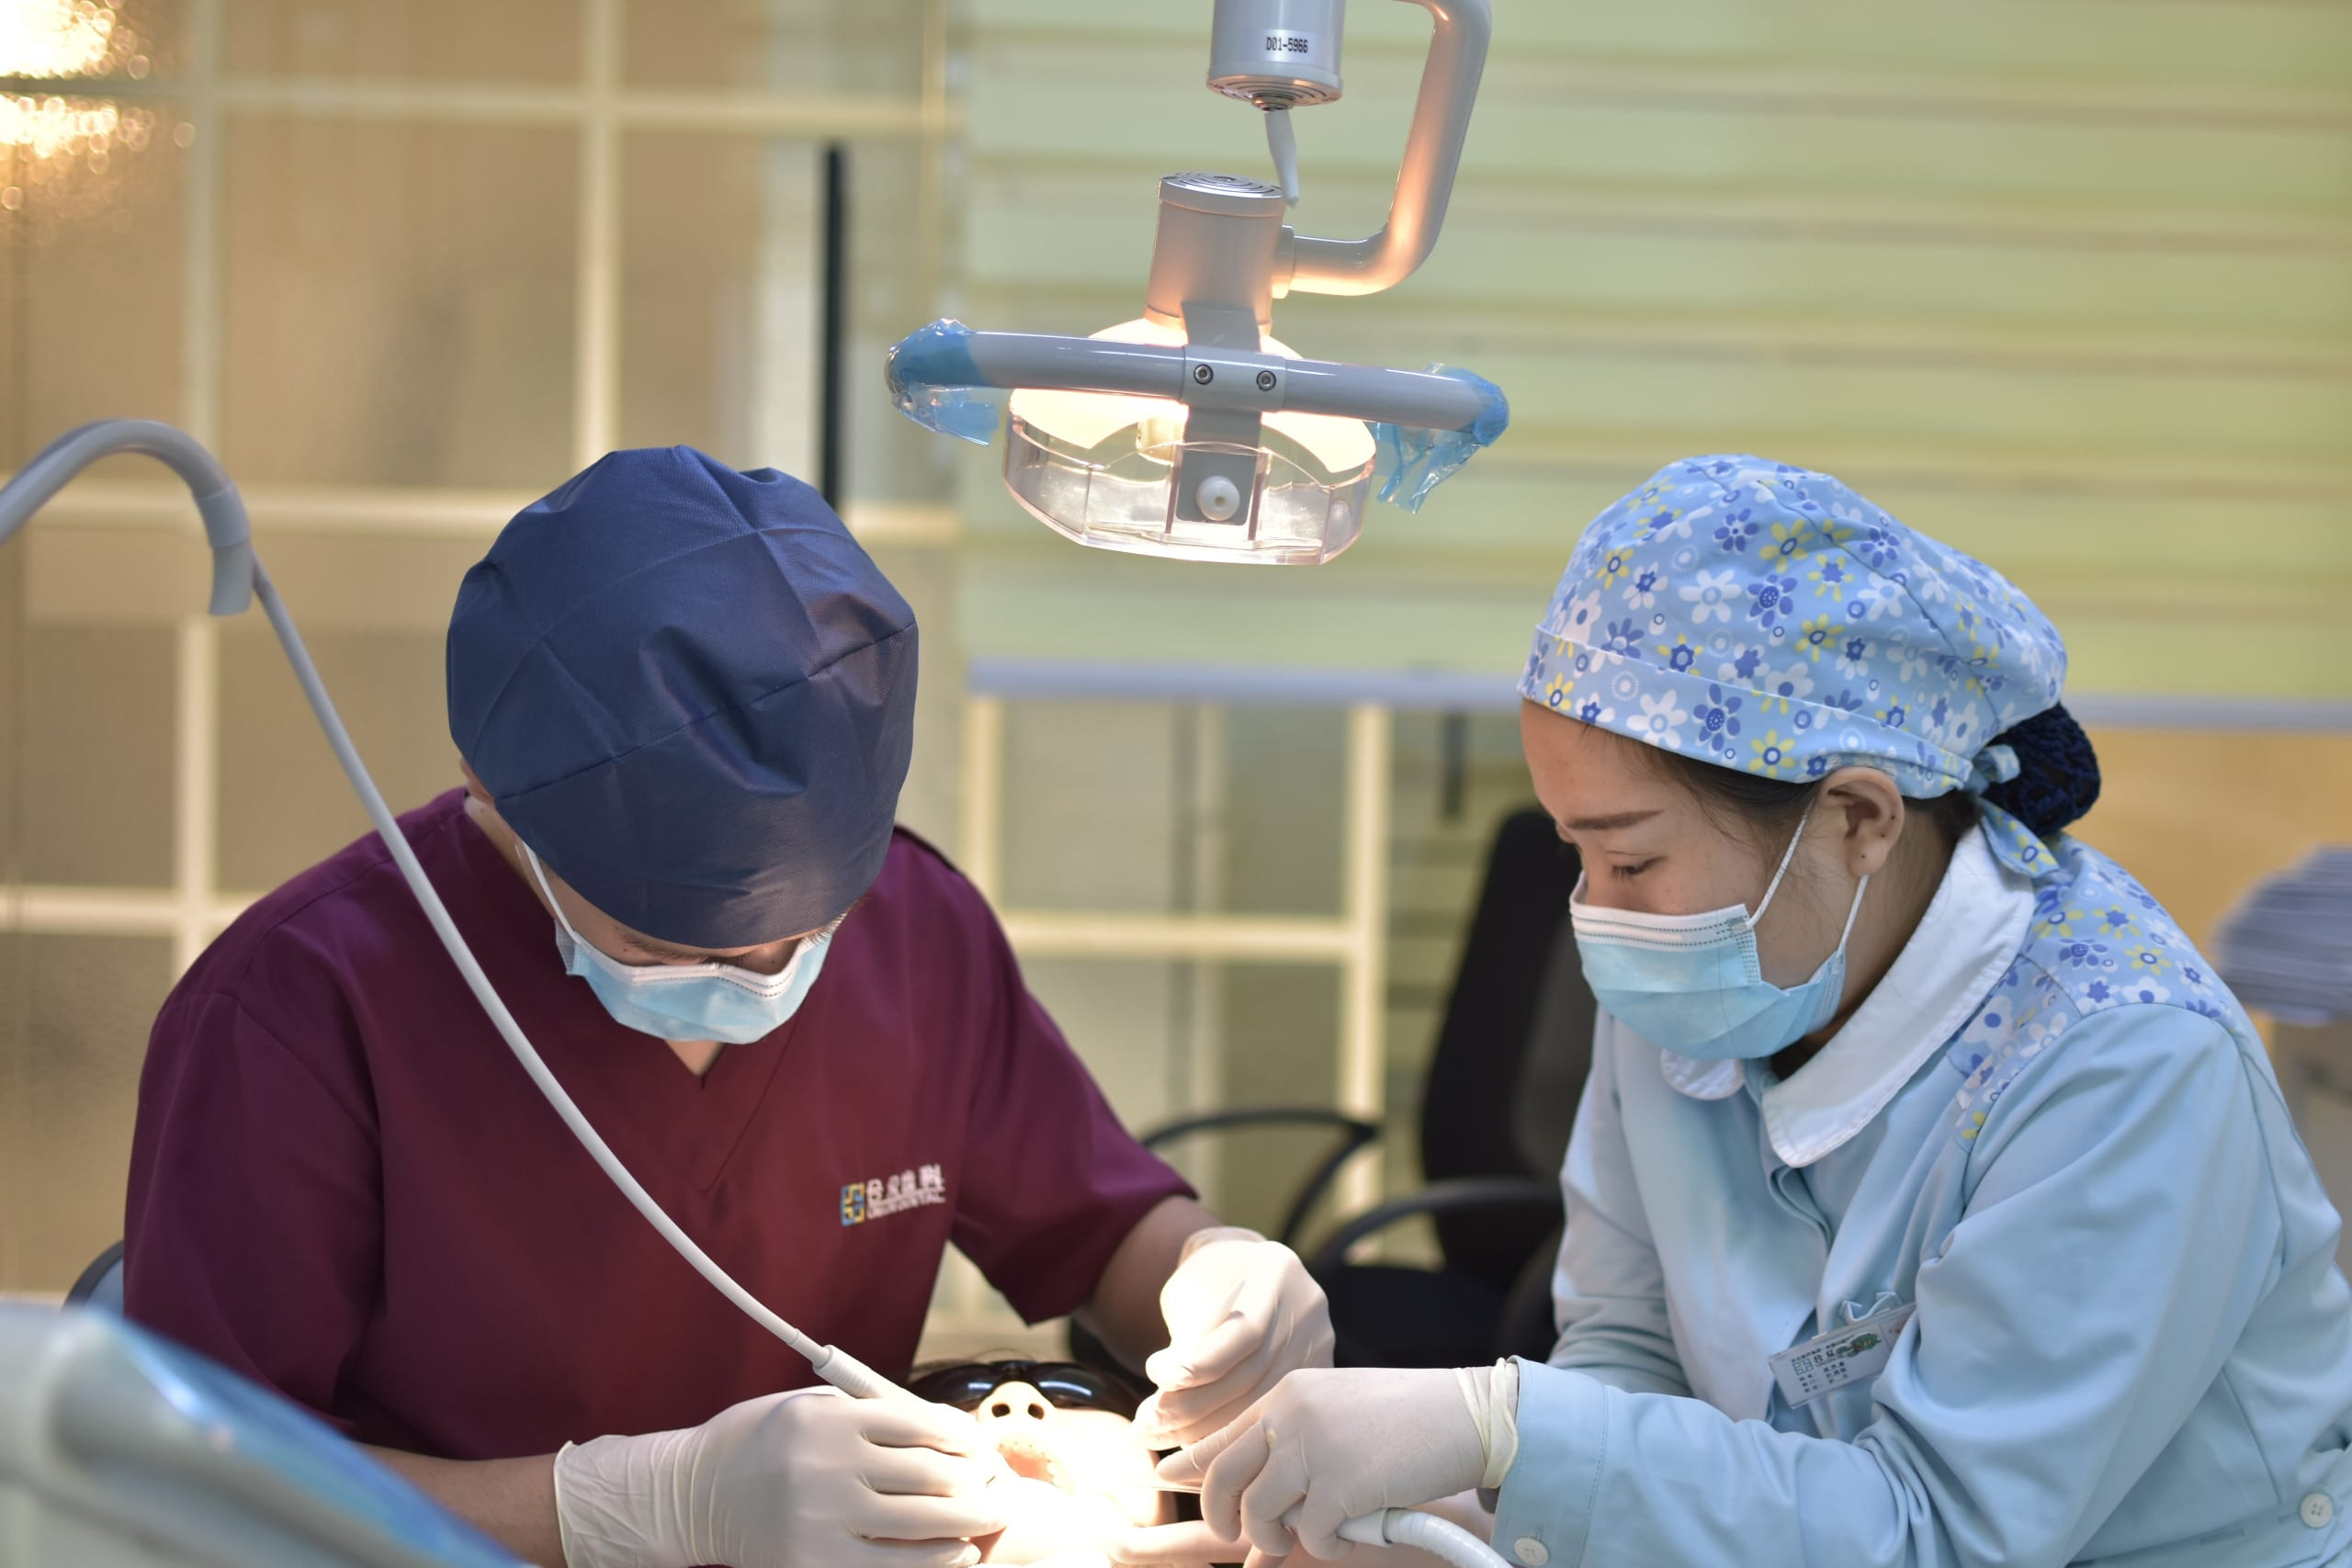 Two dentists cleaning a patient's teeth.